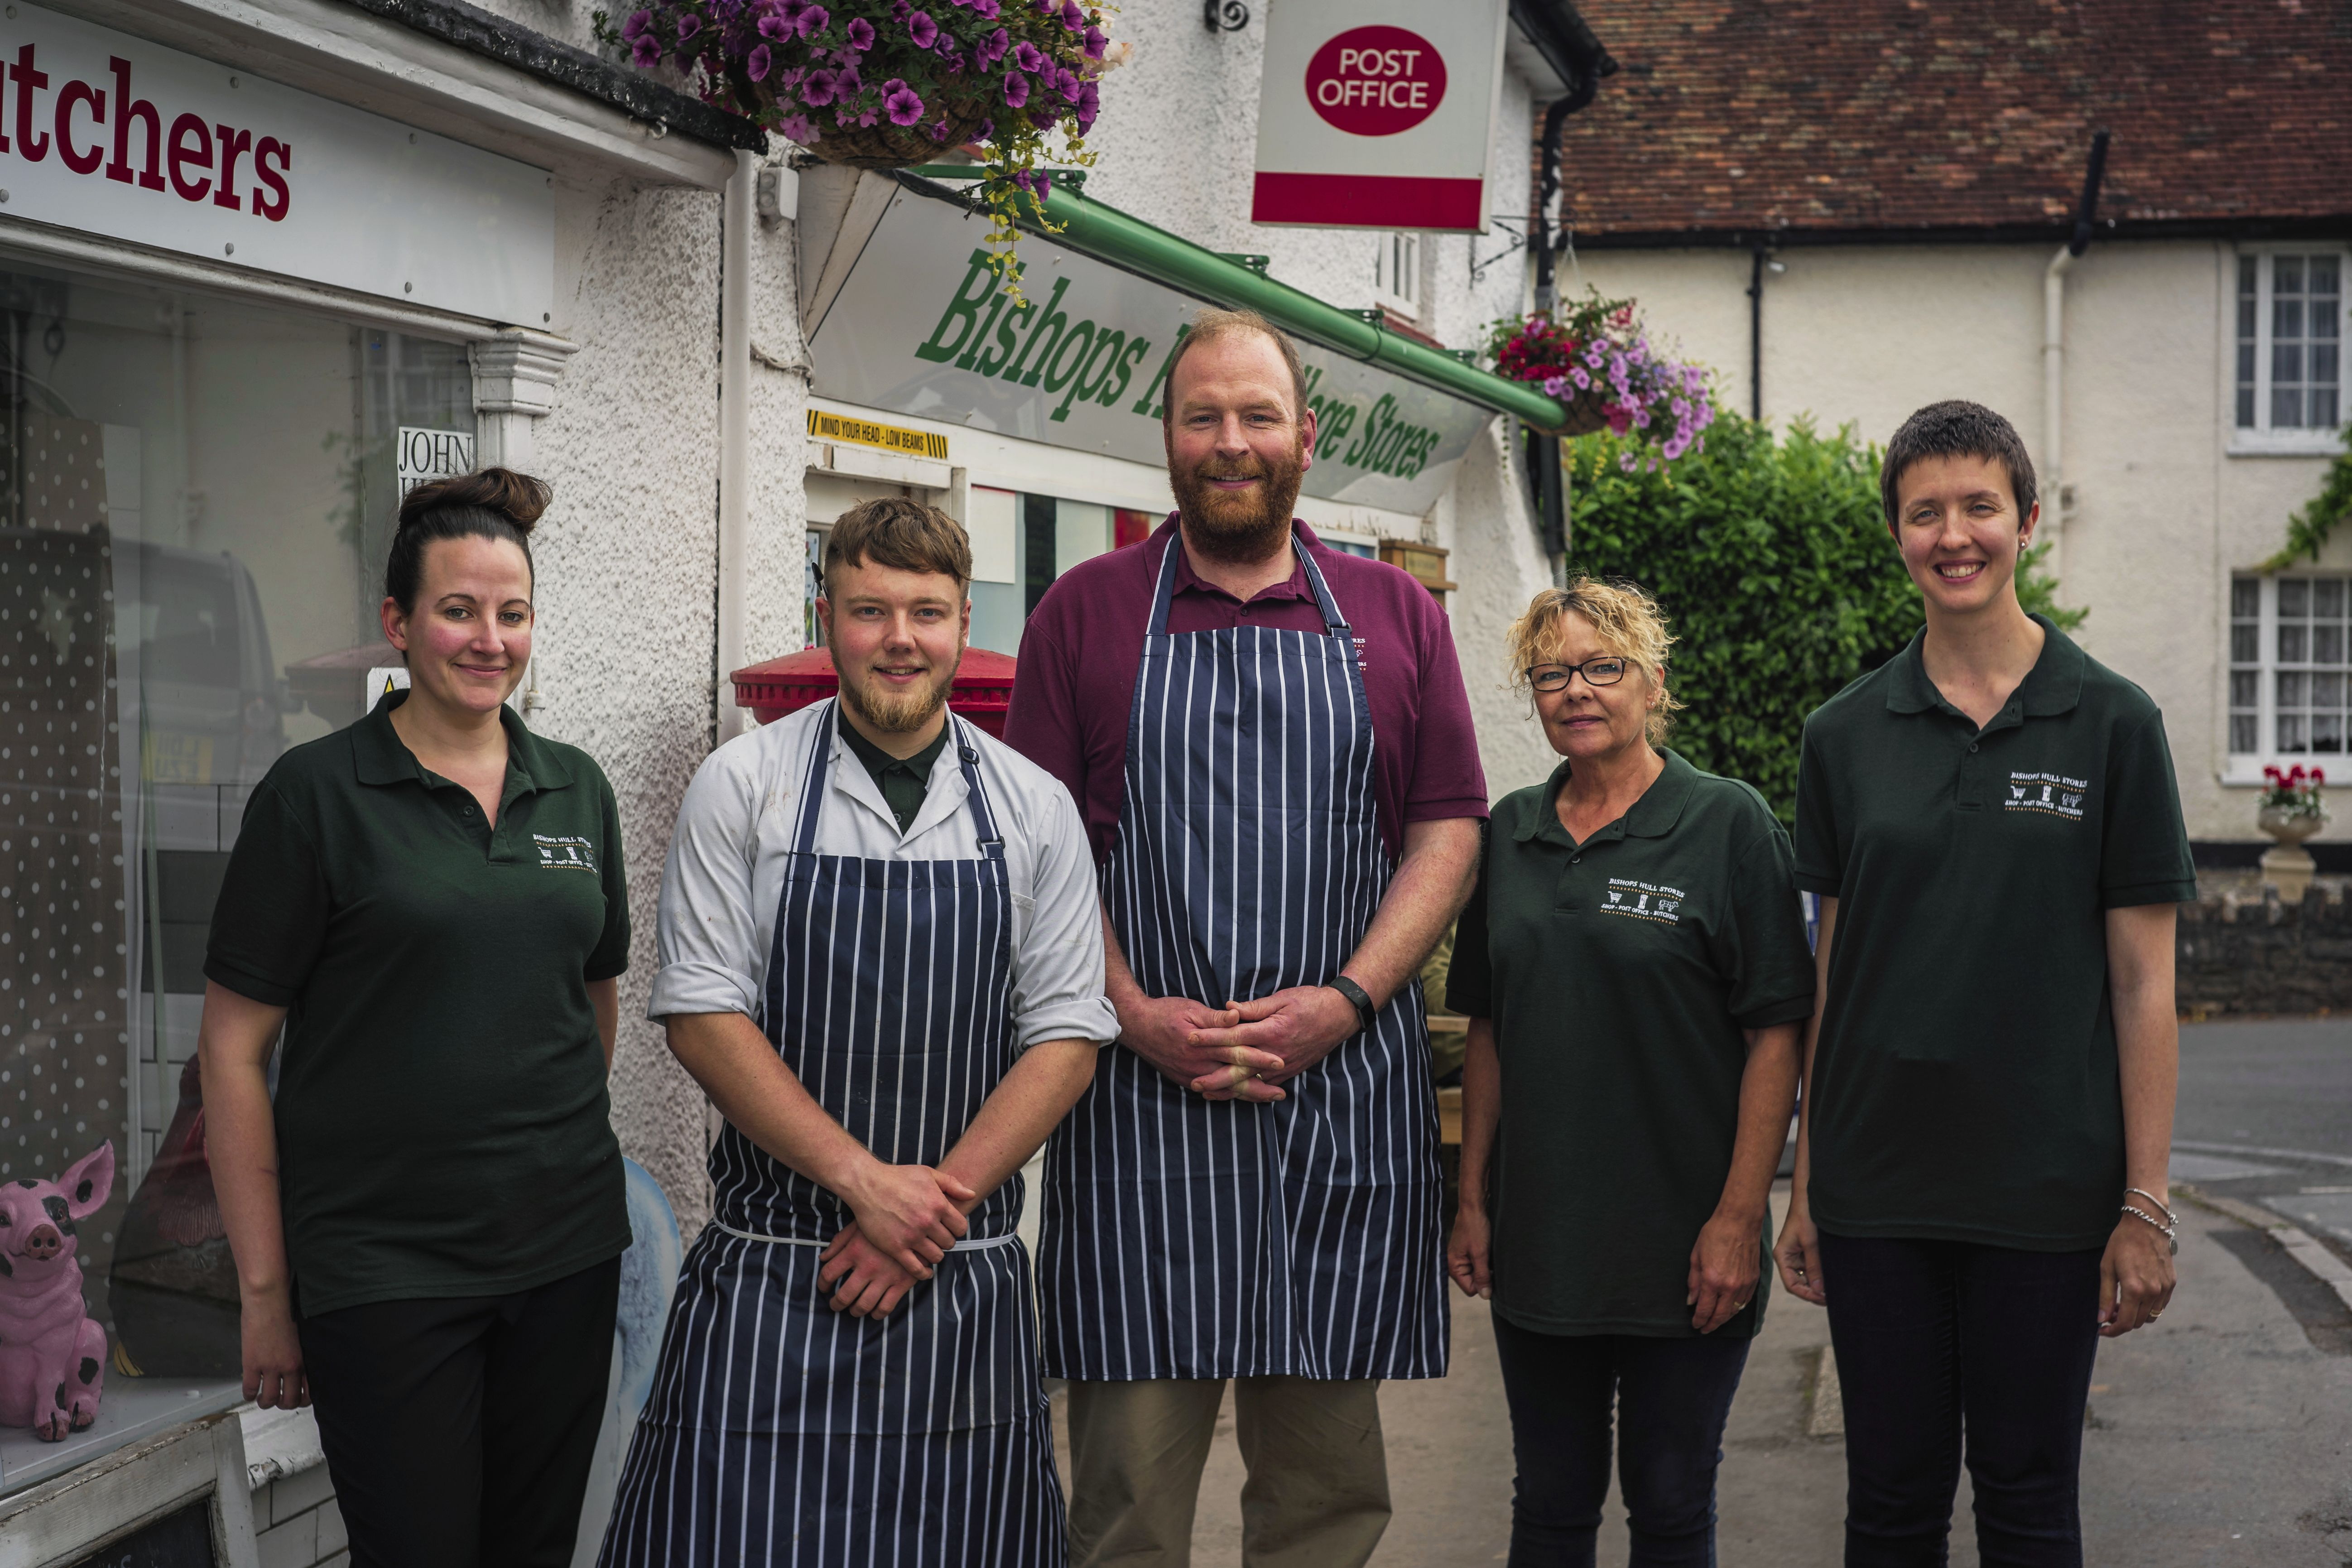 Tom the Butcher and hist team